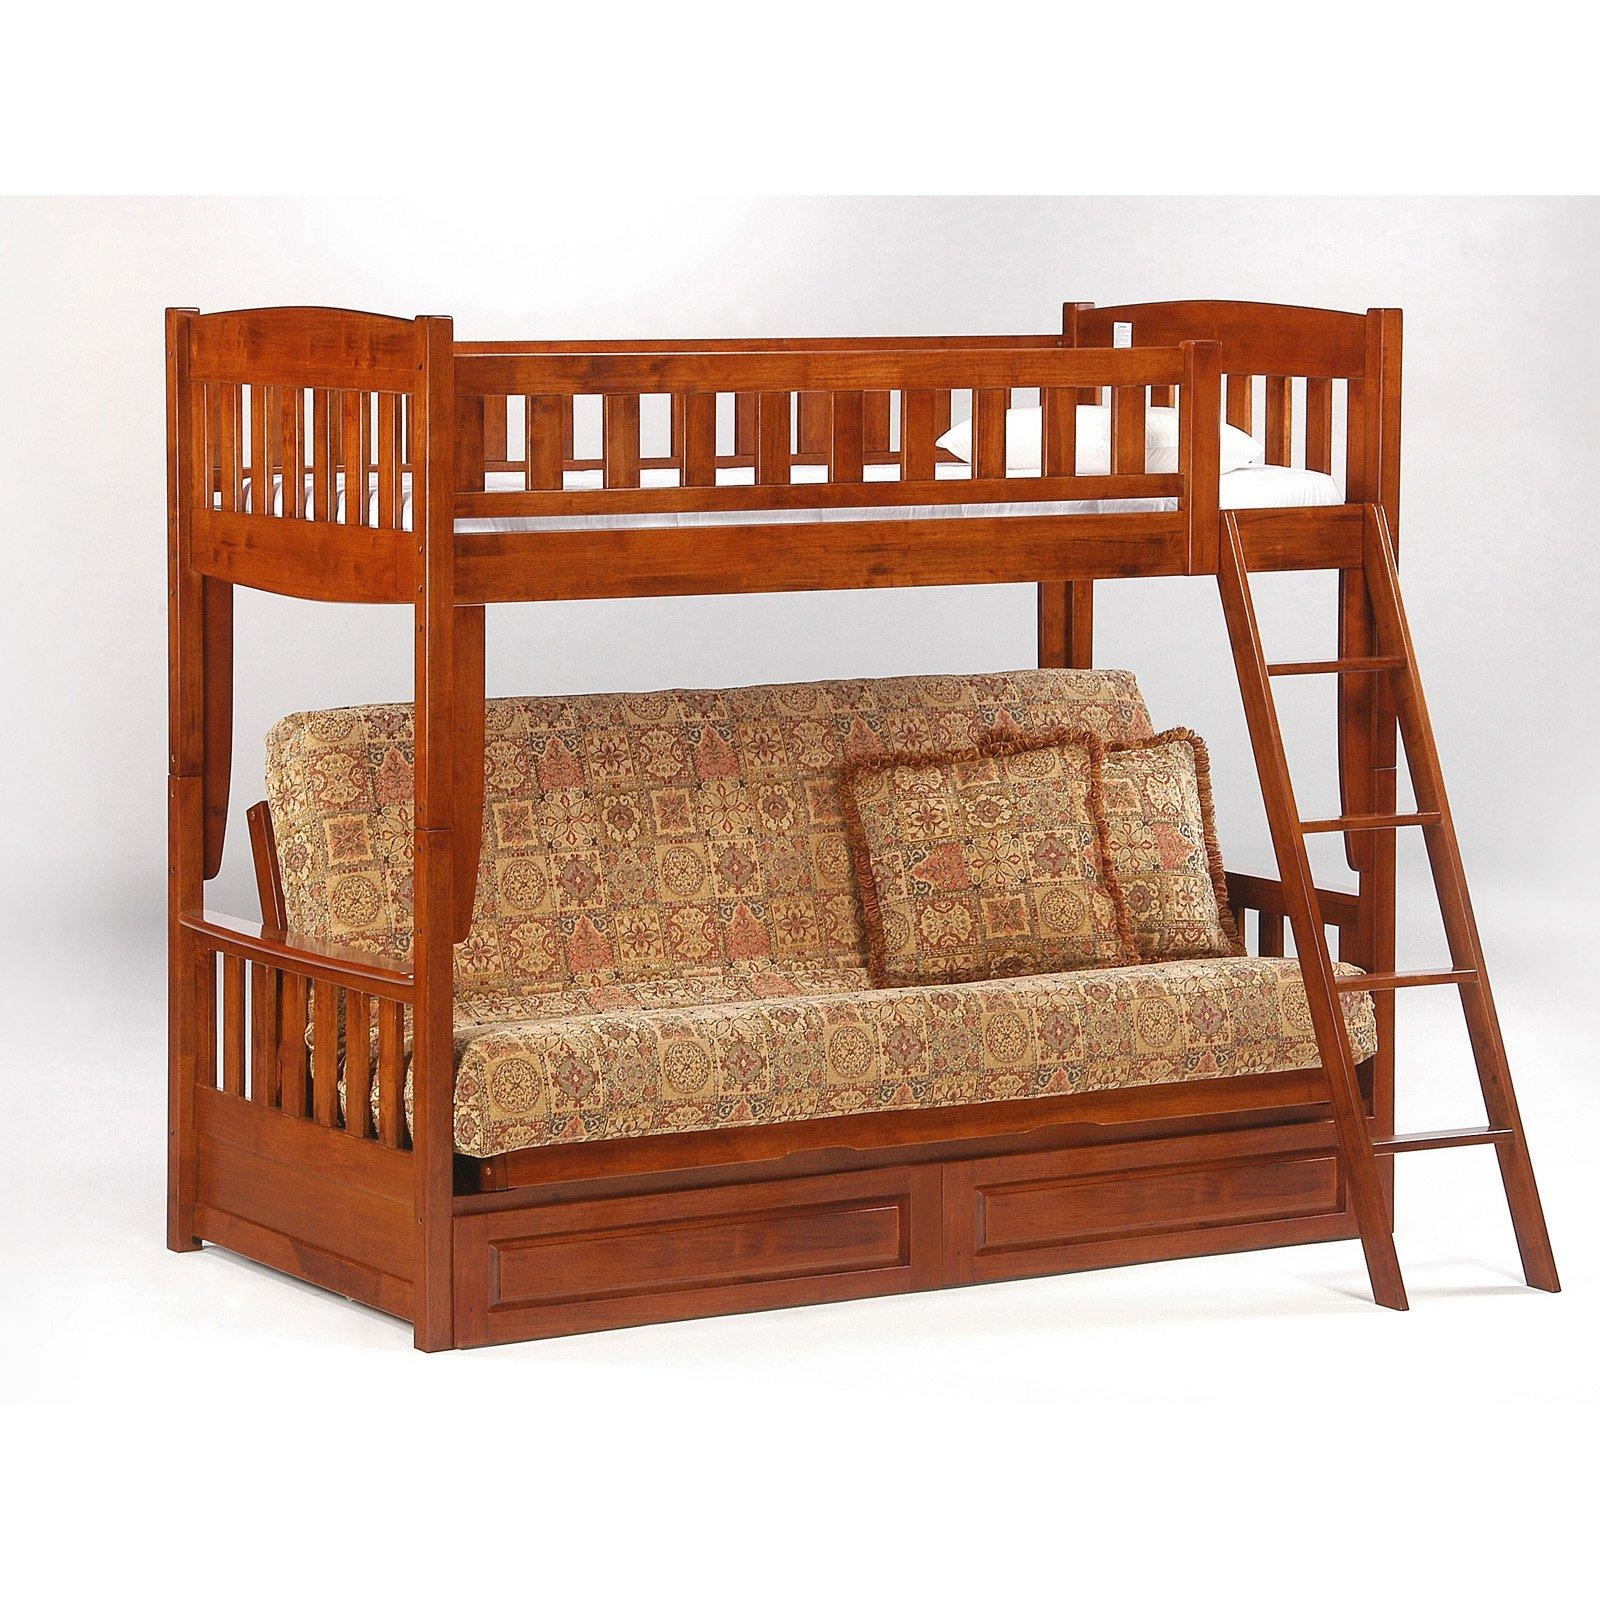 Futon That Turns Into A Bunk Bed | Roselawnlutheran With Sofas Converts To Bunk Bed (Image 15 of 20)